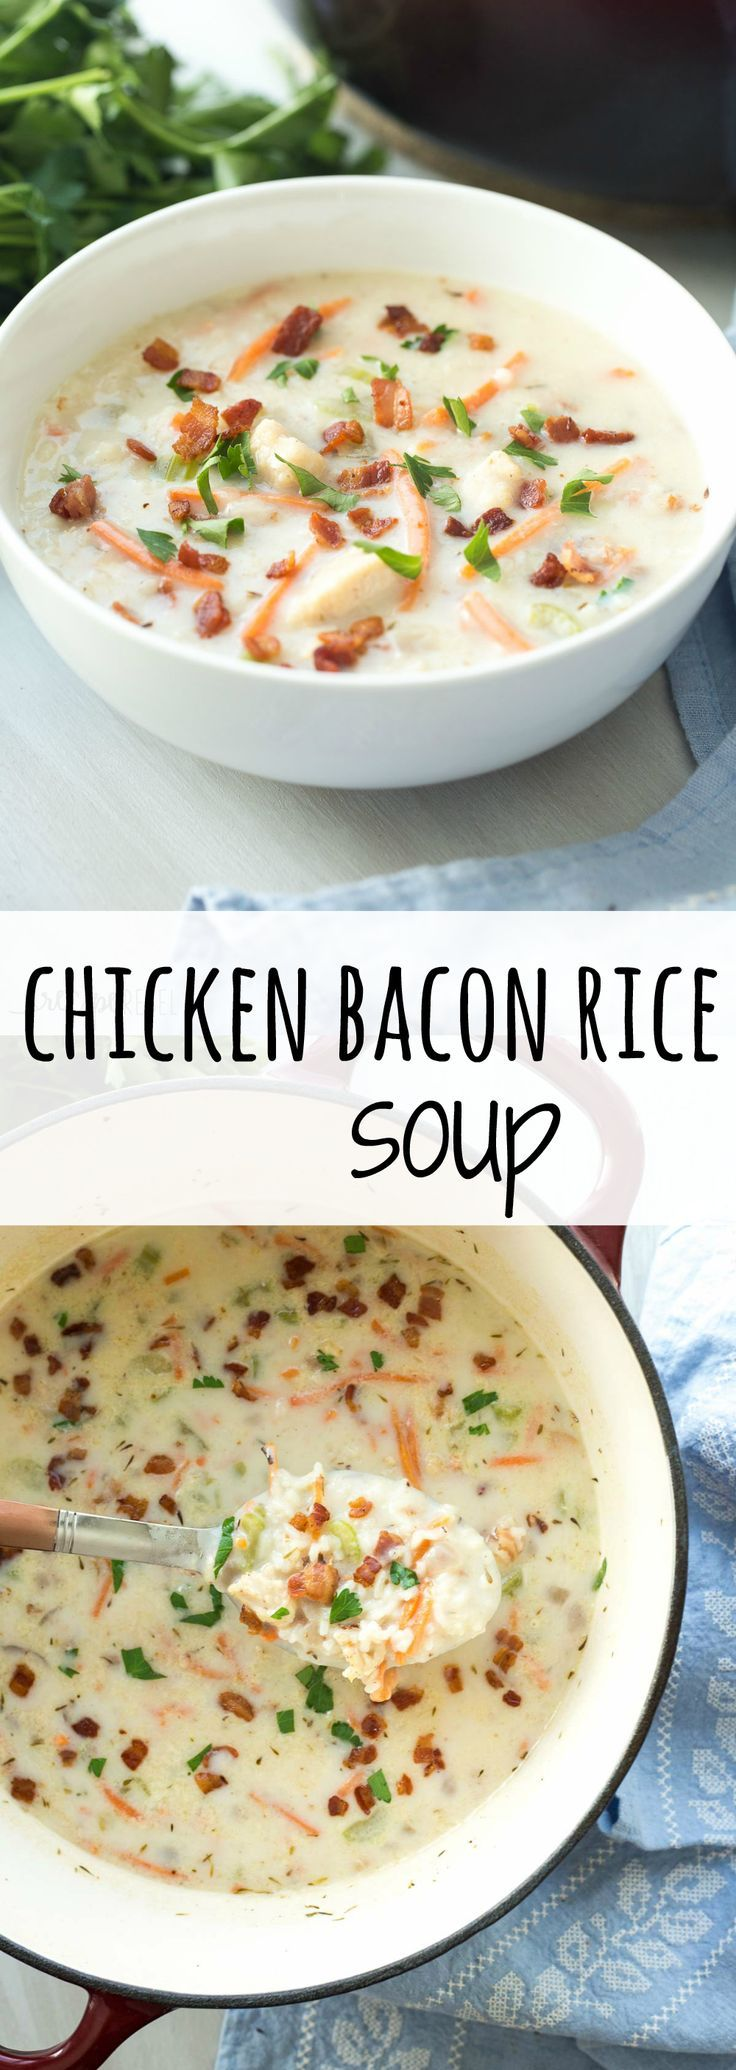 This thick, creamy, Chicken Bacon Rice Soup is so easy to make and comes together quickly in one pot!